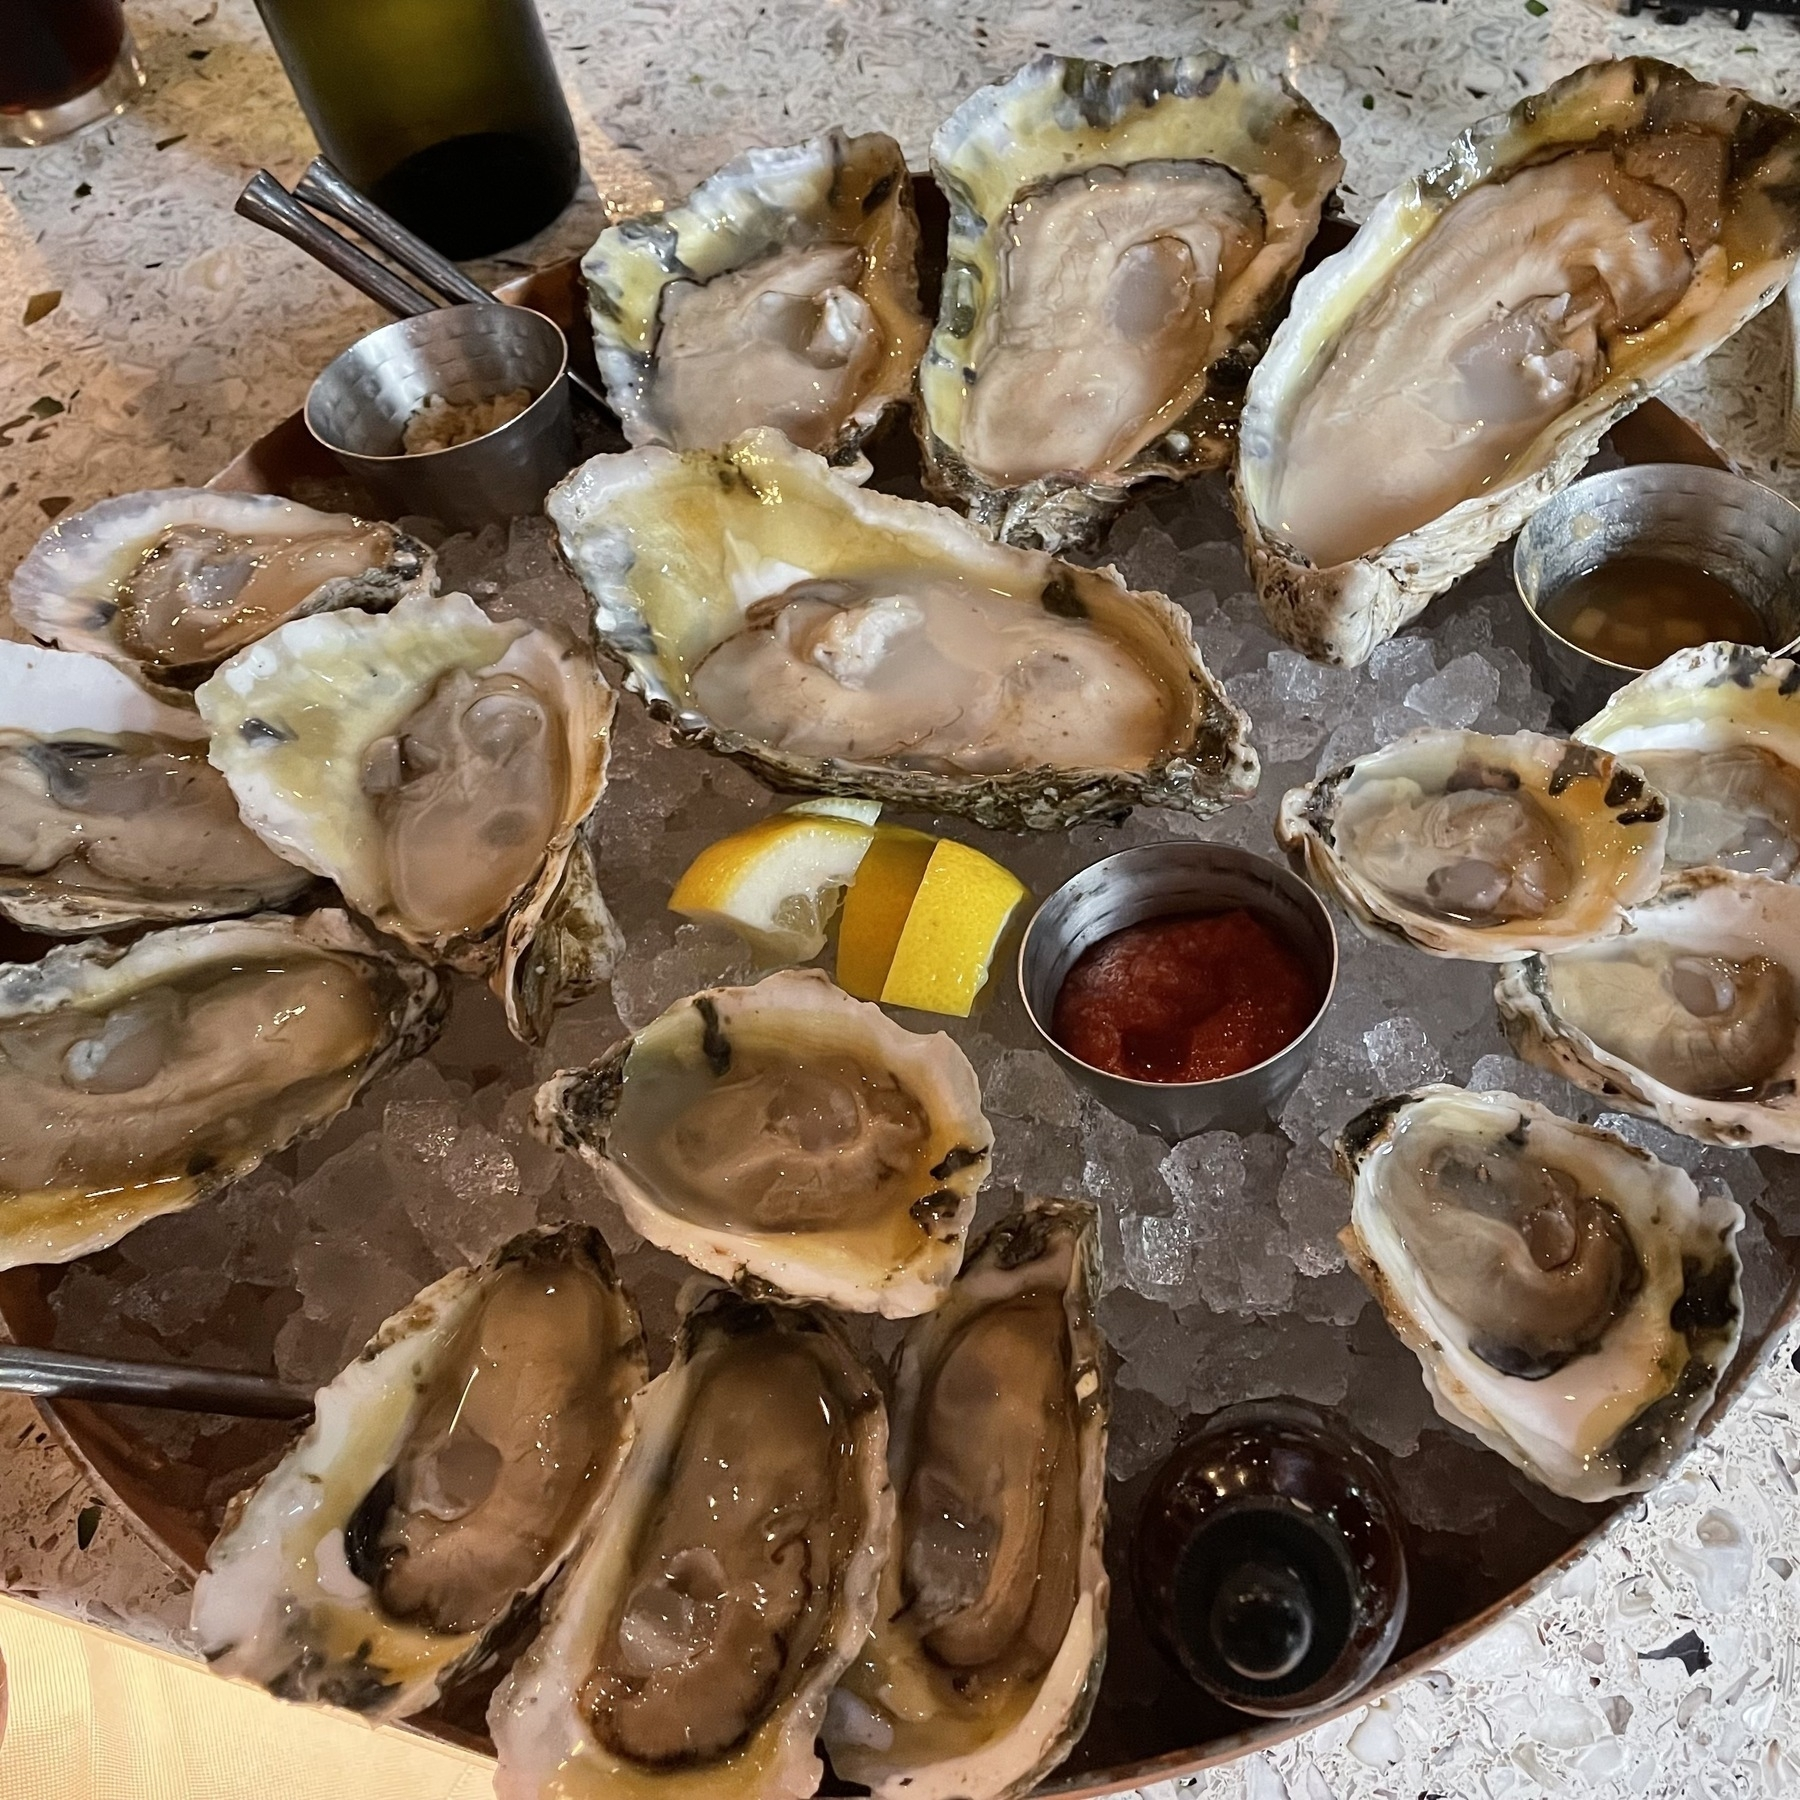 16 oysters laid out on a bed of ice at True Chesapeake.